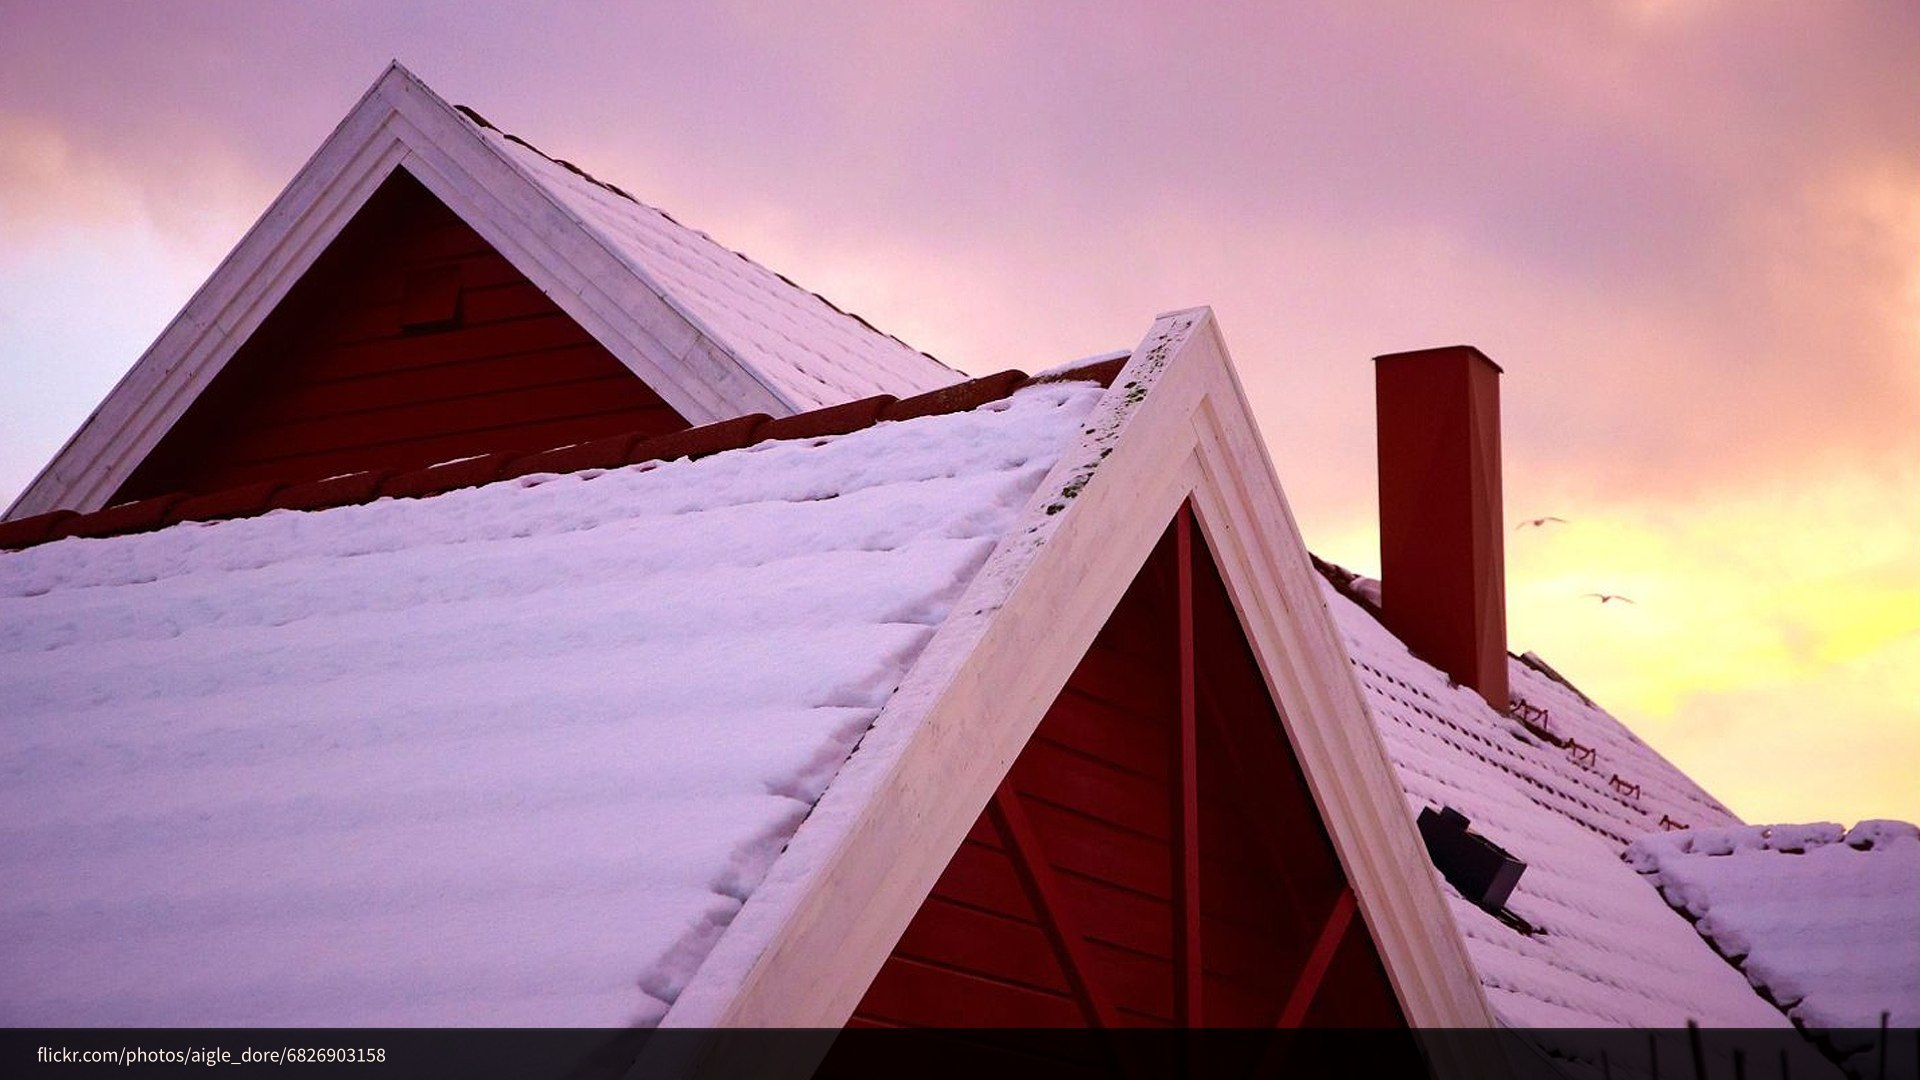 A photograph of a snow-covered roof